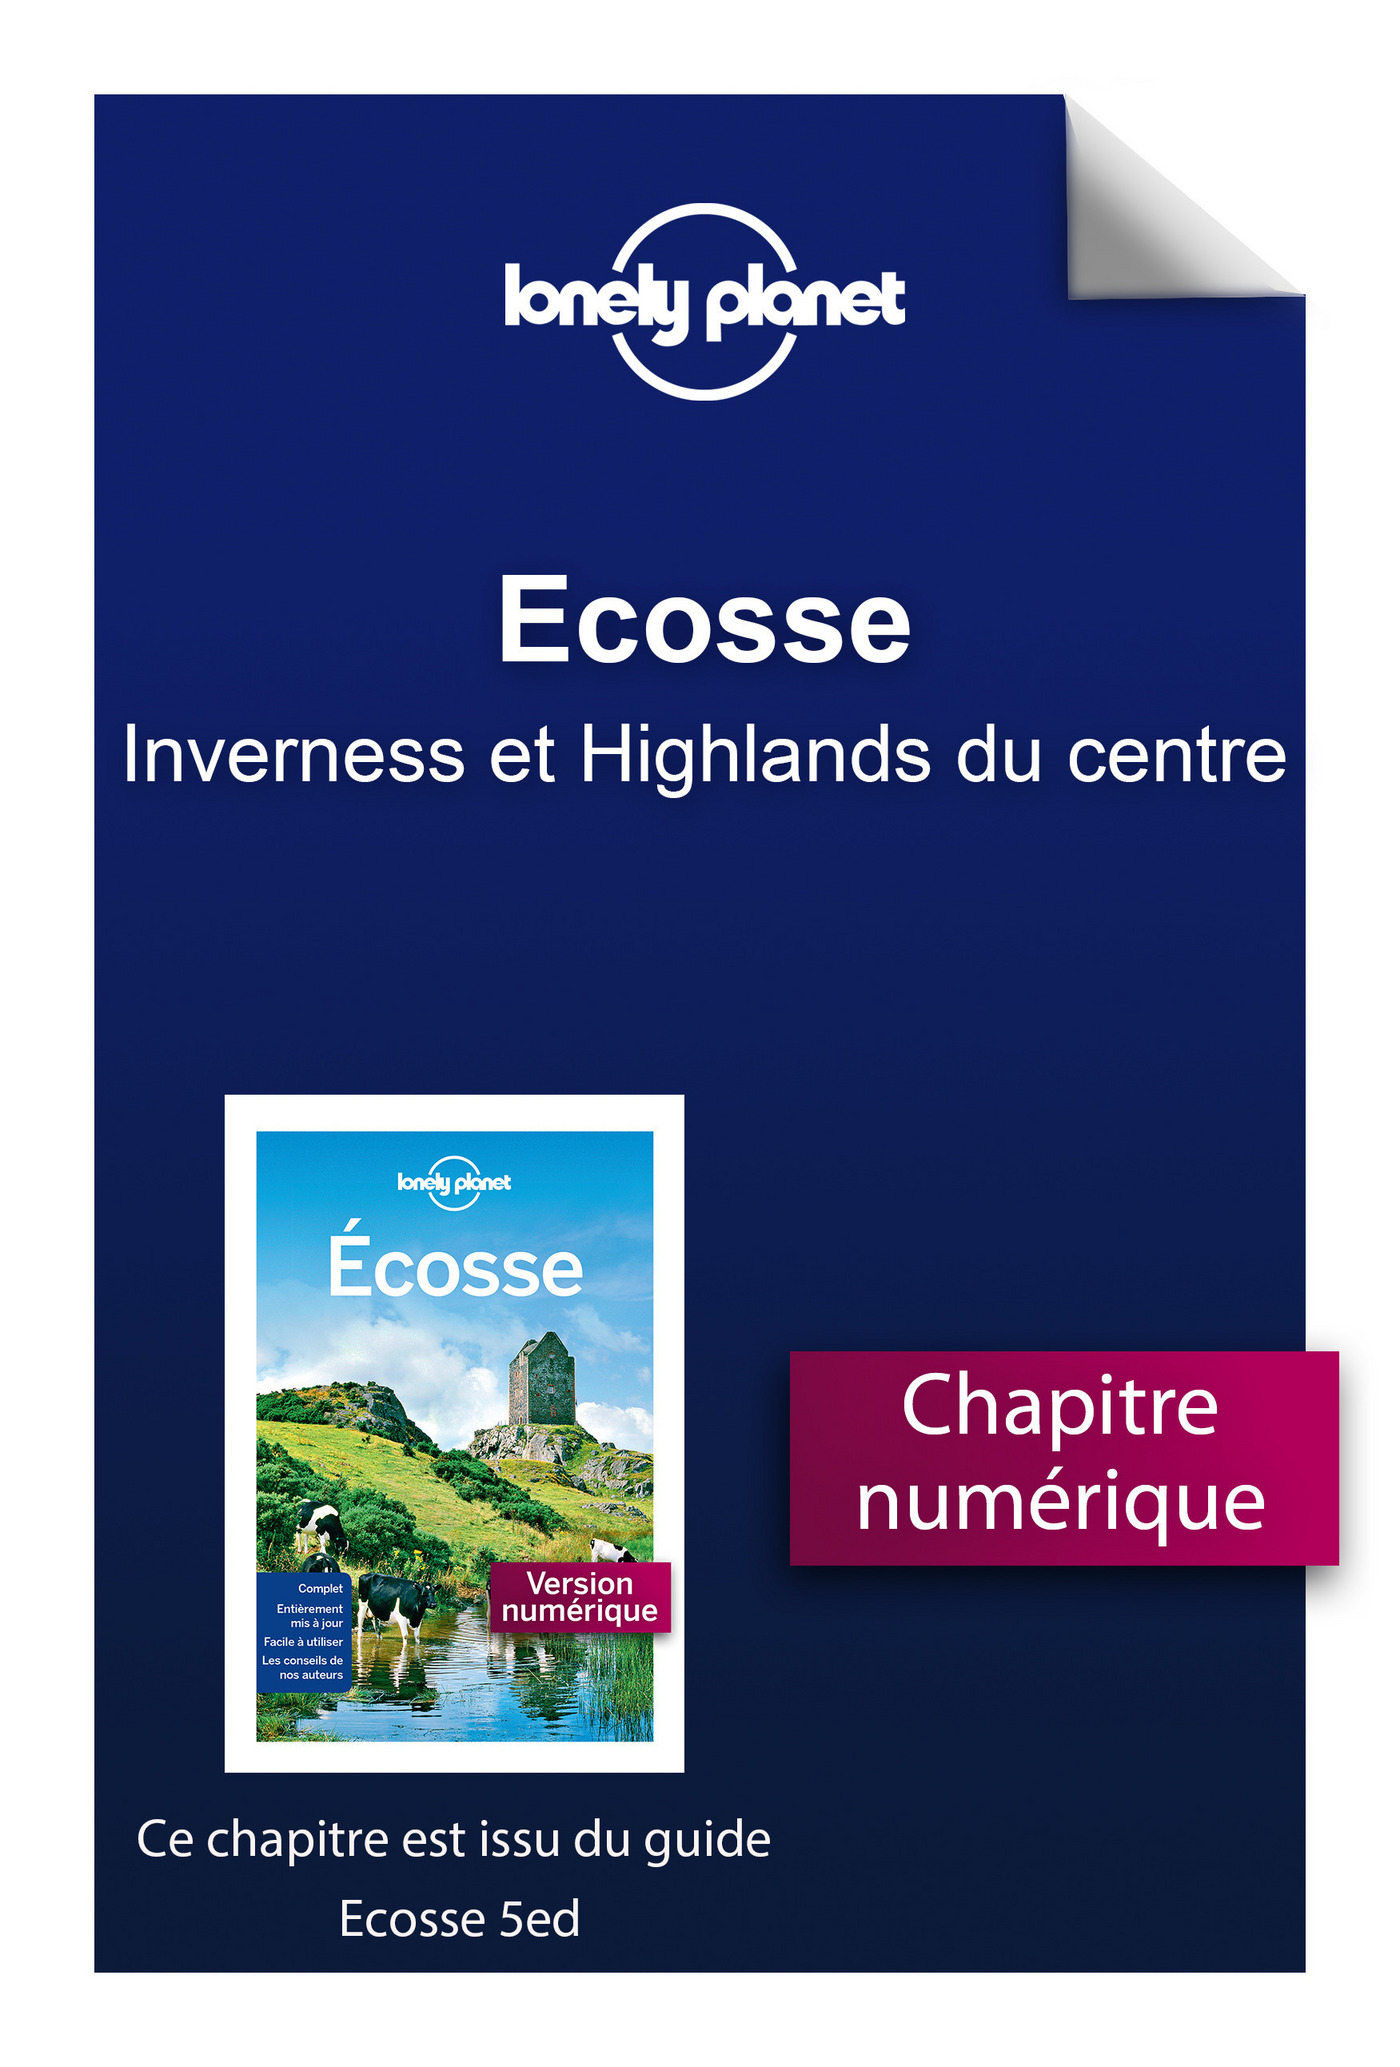 Ecosse 5 - Inverness et Highlands du centre